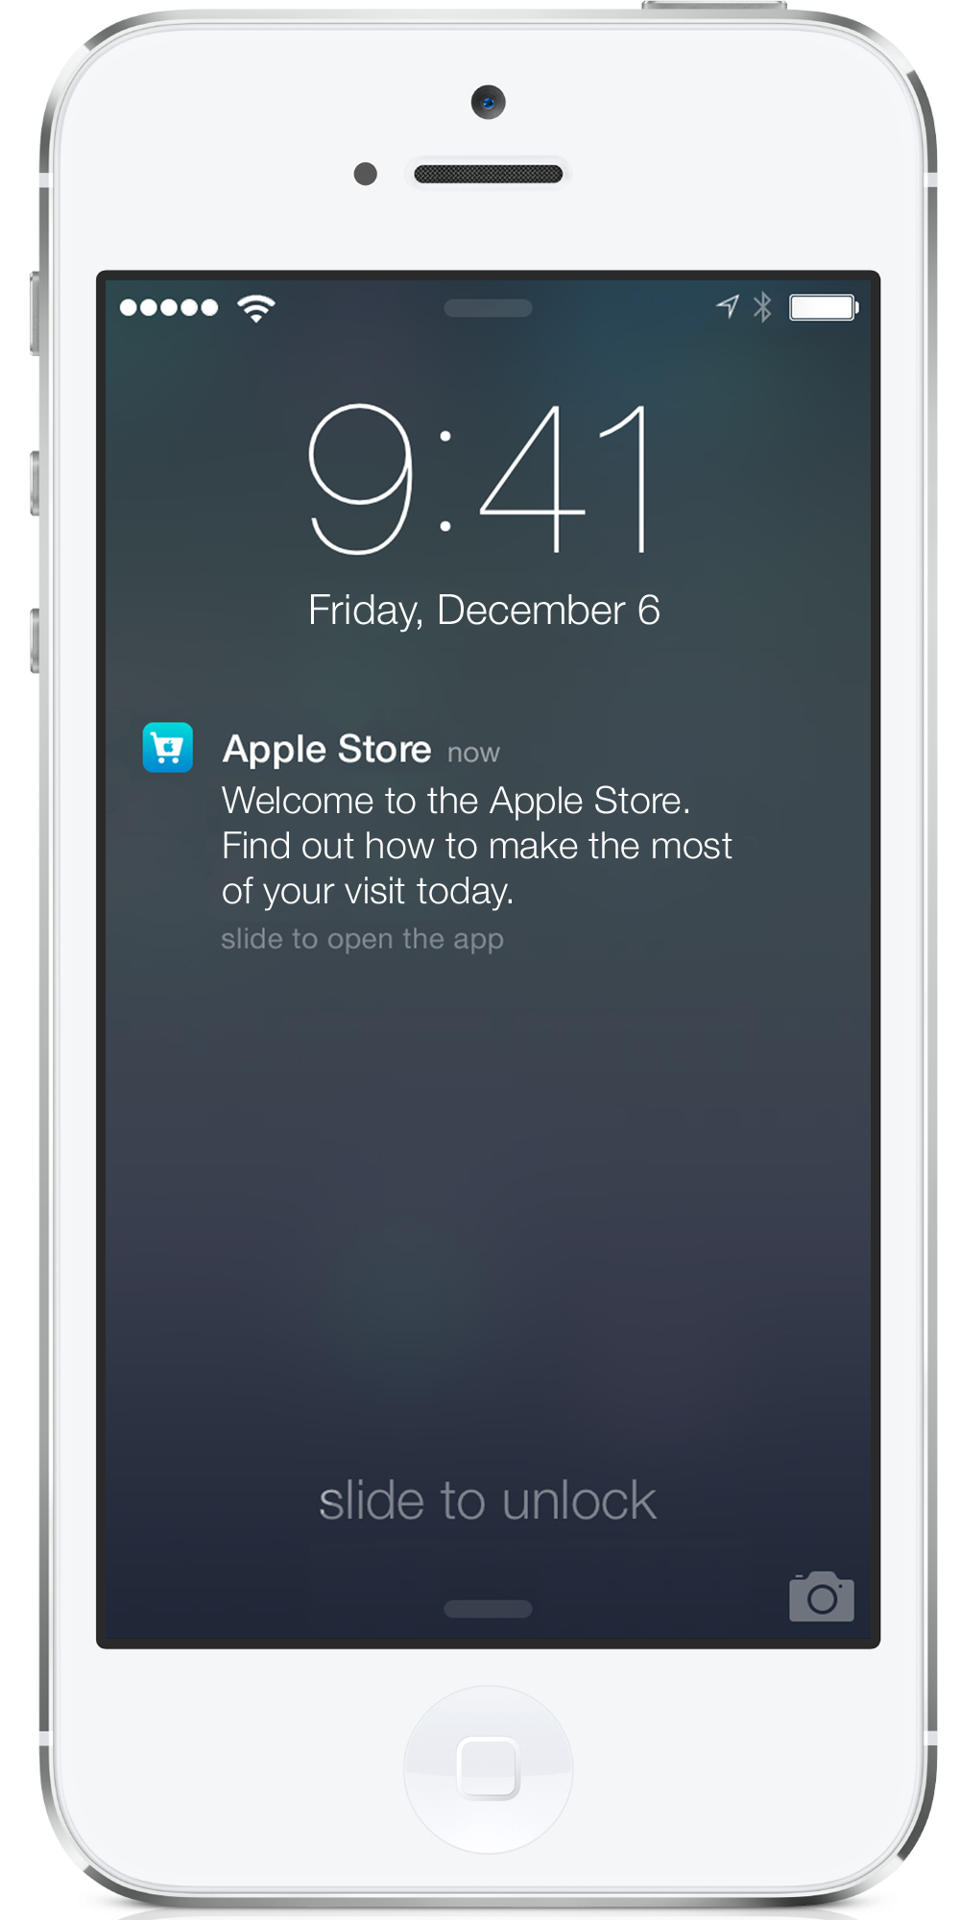 iBeacons-Apple-Store-app-iPhone-screenshot-004.jpg